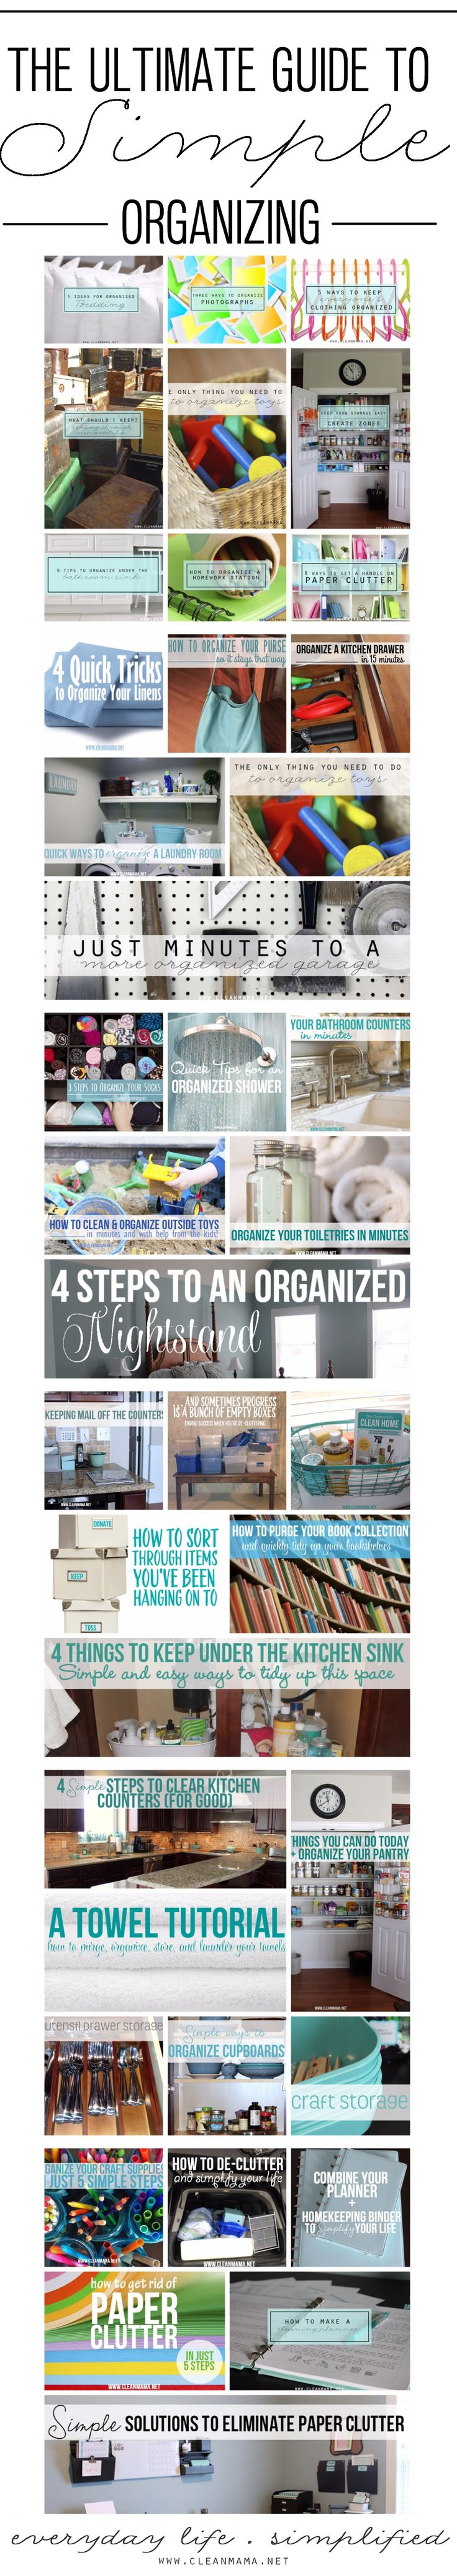 Organize anything and everything with this comprehensive resource! From bedrooms to kitchens to everything in between, this has got you covered.